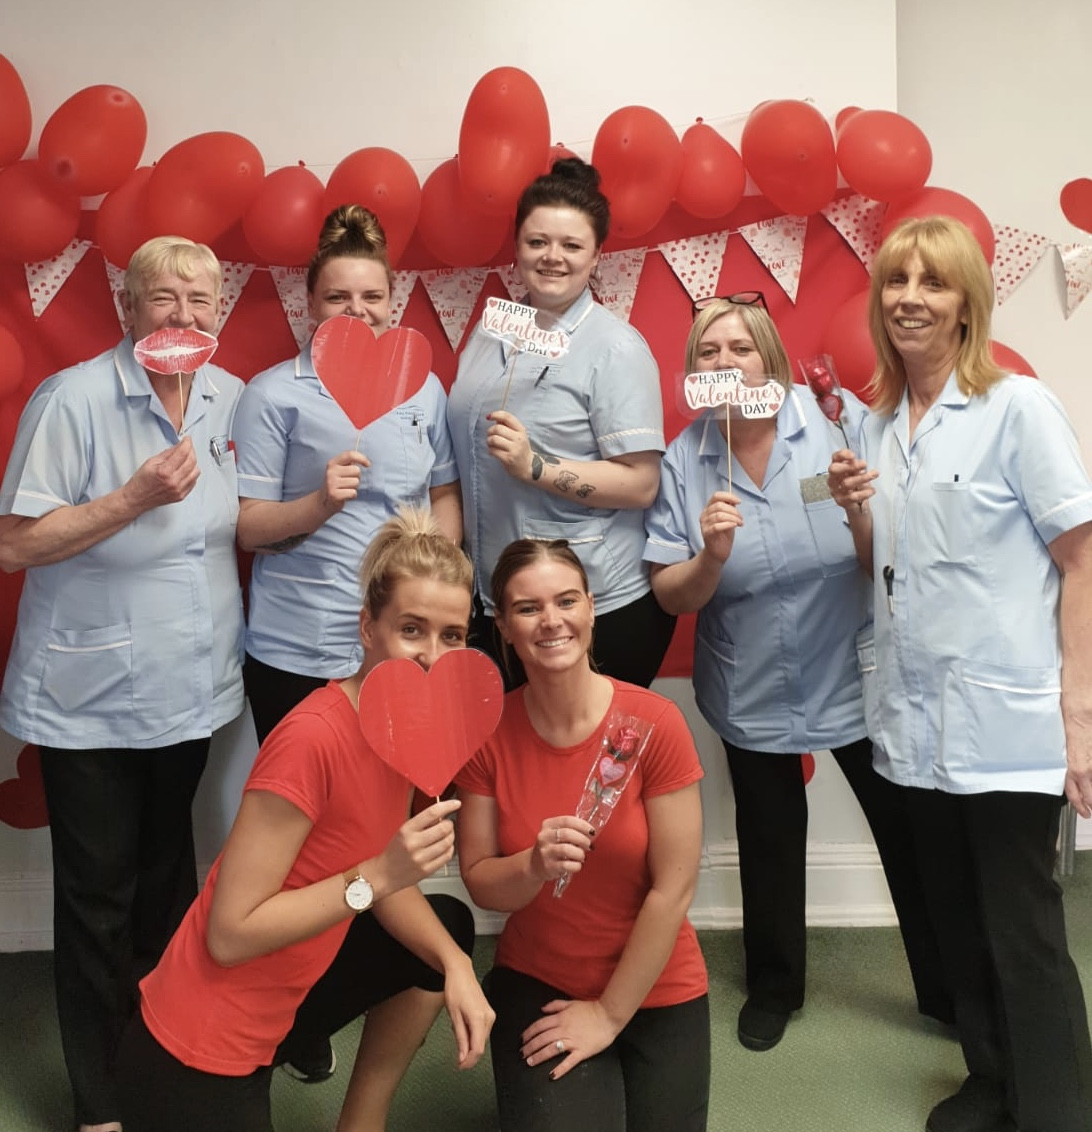 Valentines at Victoria House Care Centre: Key Healthcare is dedicated to caring for elderly residents in safe. We have multiple dementia care homes including our care home middlesbrough, our care home St. Helen and care home saltburn. We excel in monitoring and improving care levels.